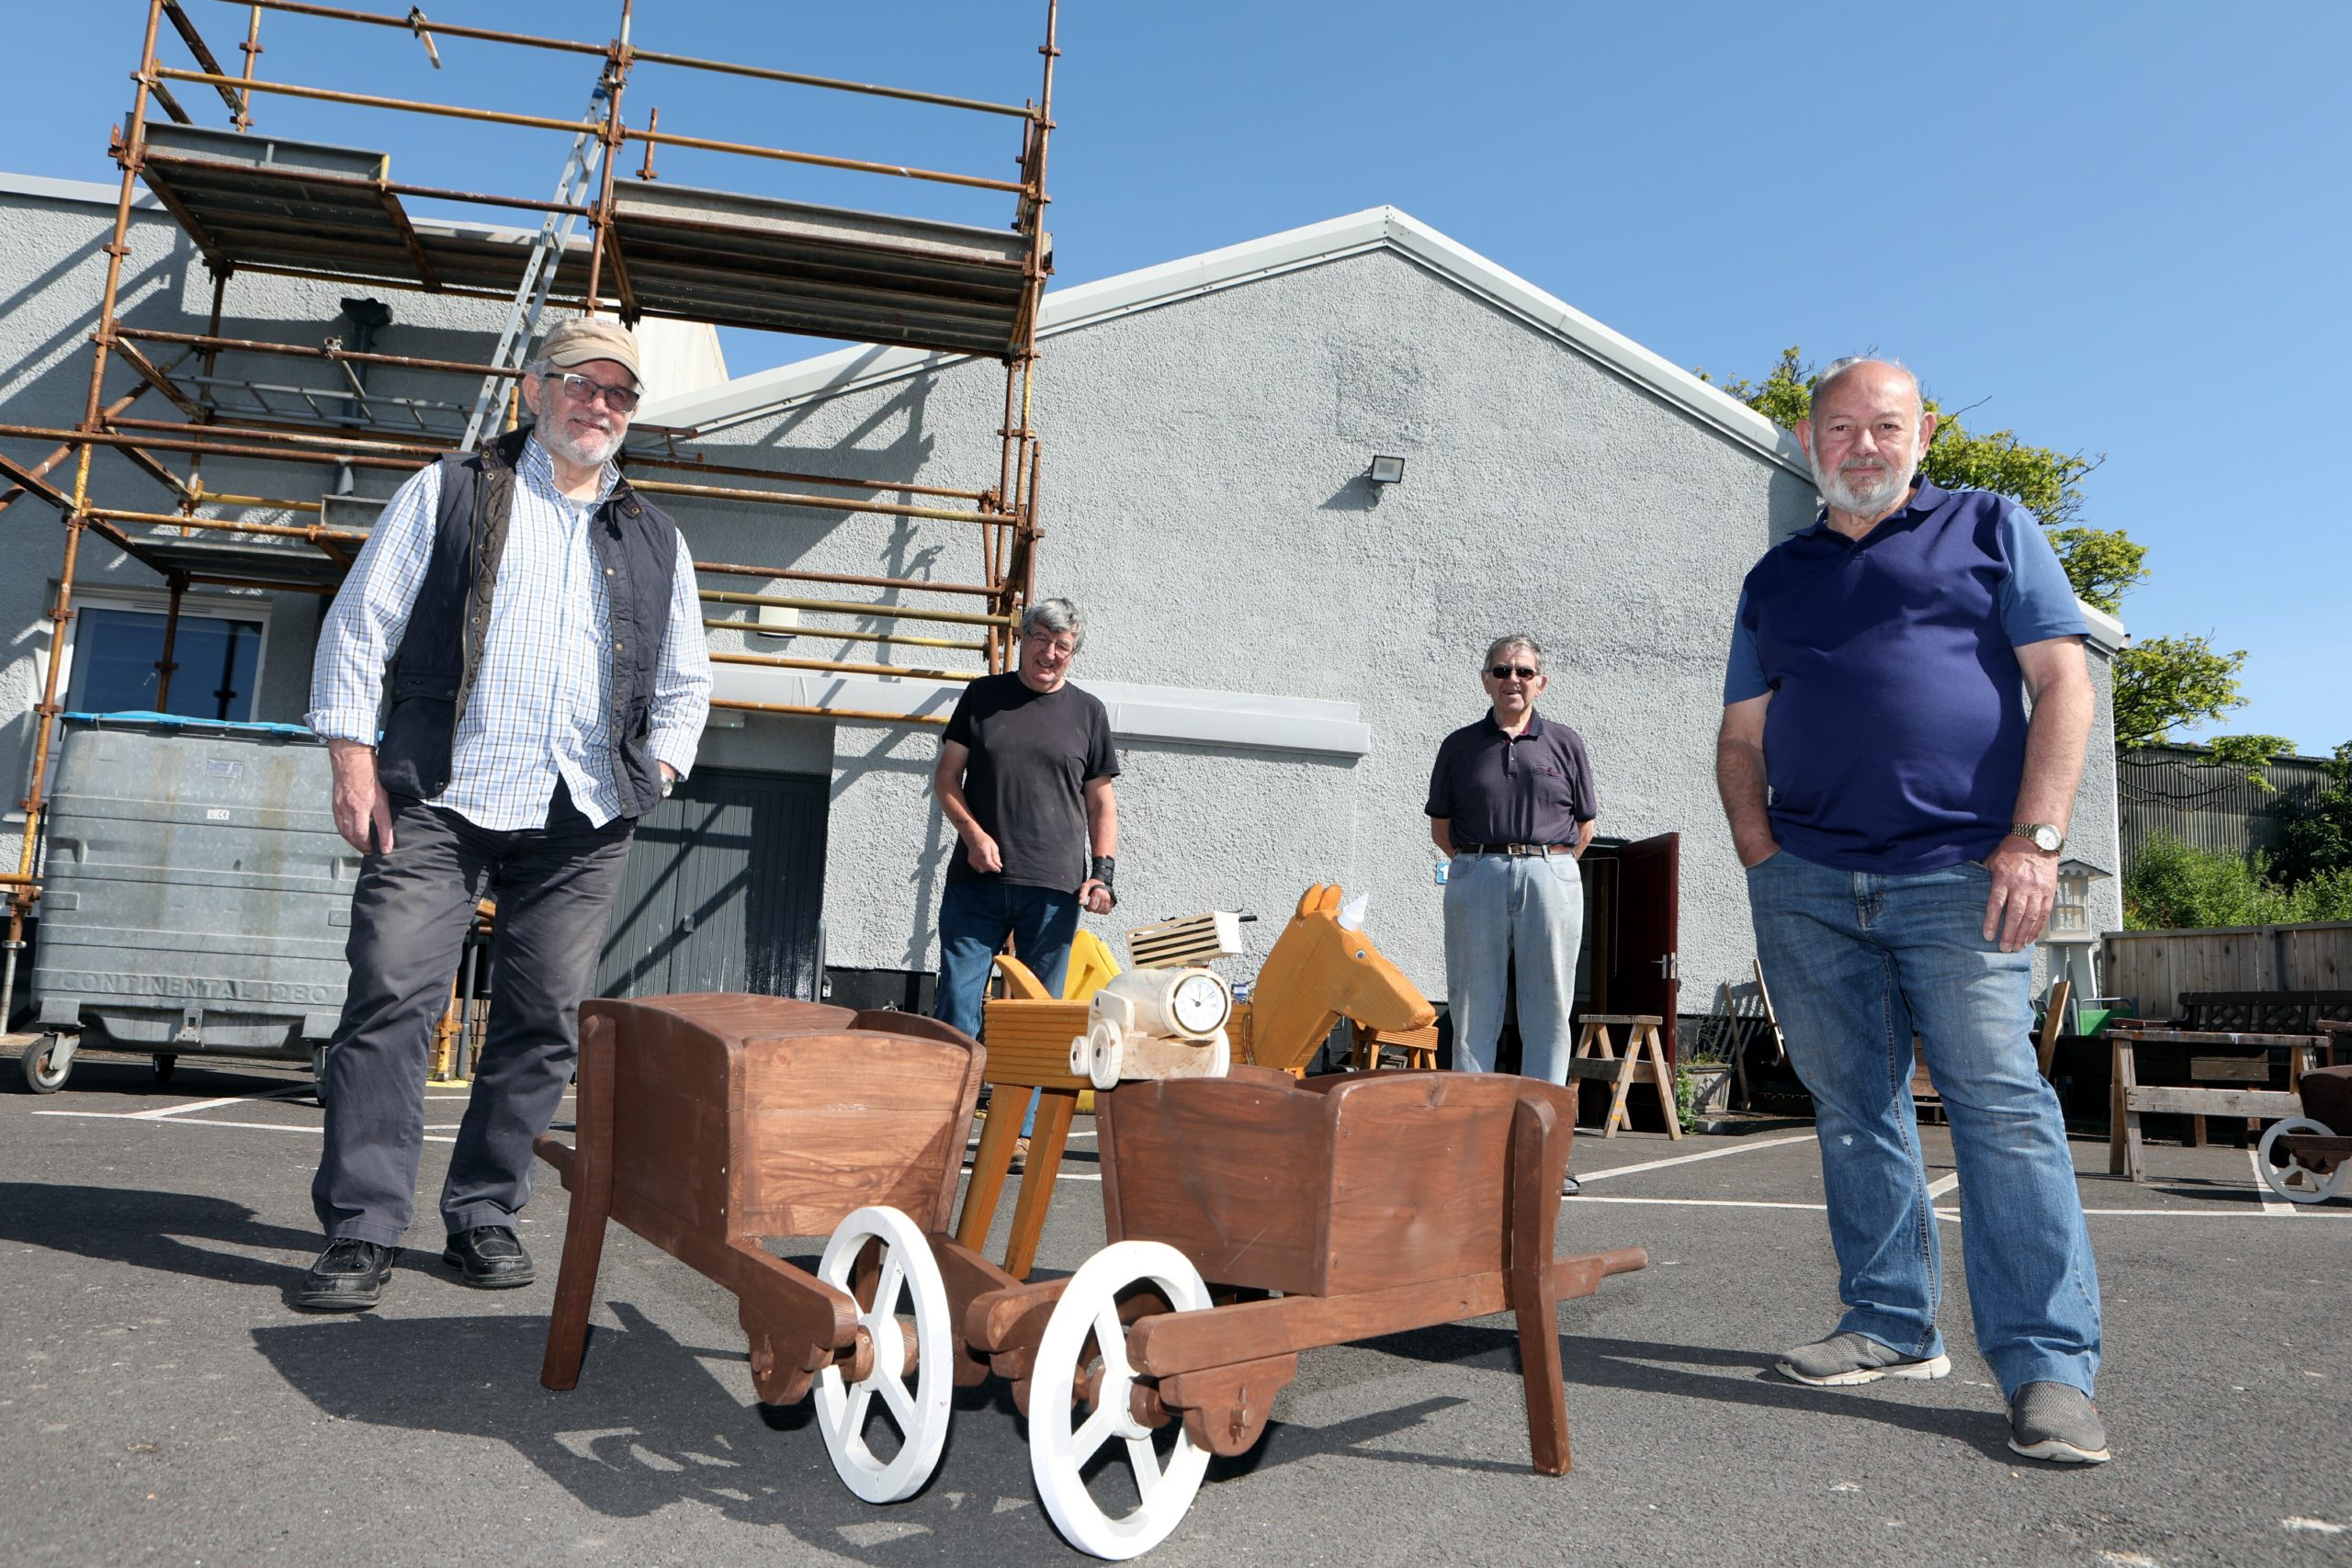 Arbroath Men's Shed secured a 25-year lease on their Dens Road premises.